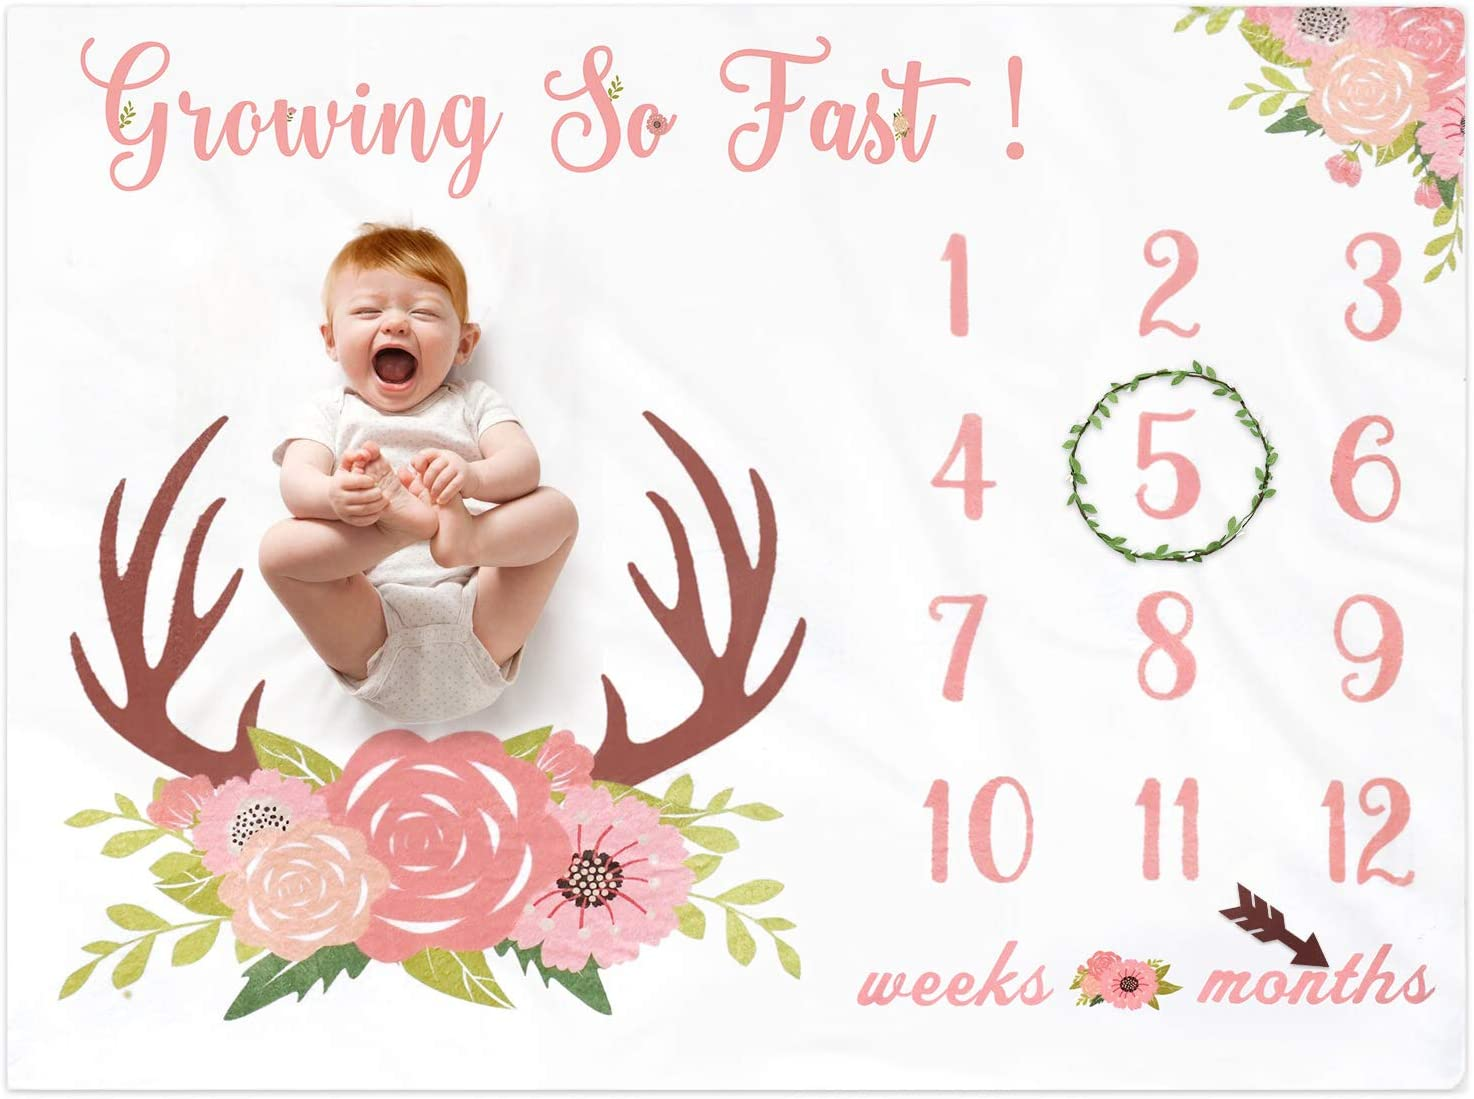 Baby Monthly Milestone Blanket for Girls Fleece Blankets Floral Deer Antler for Baby Pictures Watch Me Grow Photography Background Weeks Months with Props for Newborn Infants Shower Gift